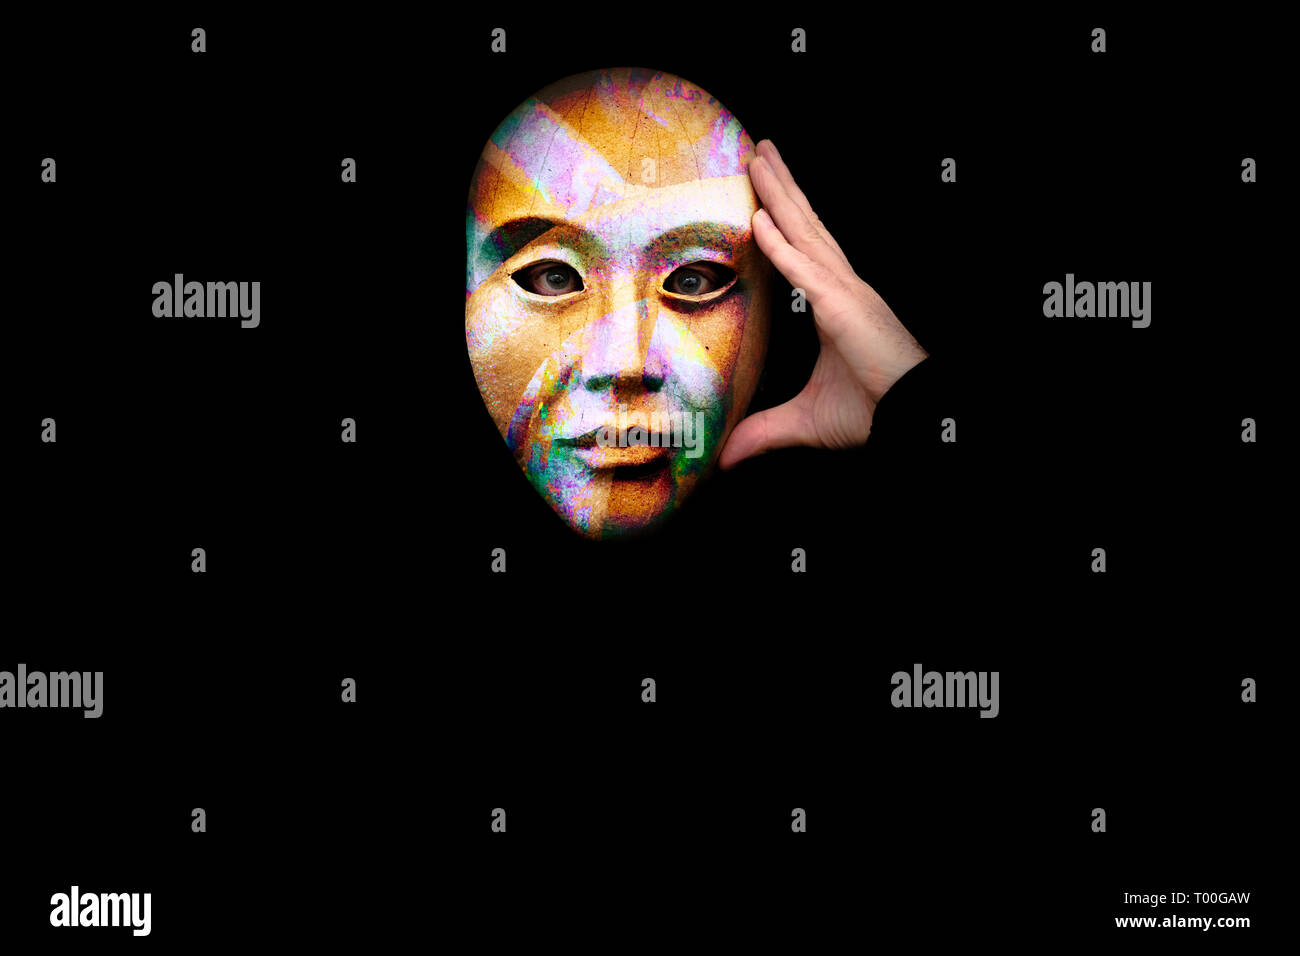 Perplexed person with hand to head wearing a colourful mask against a black background - Stock Image